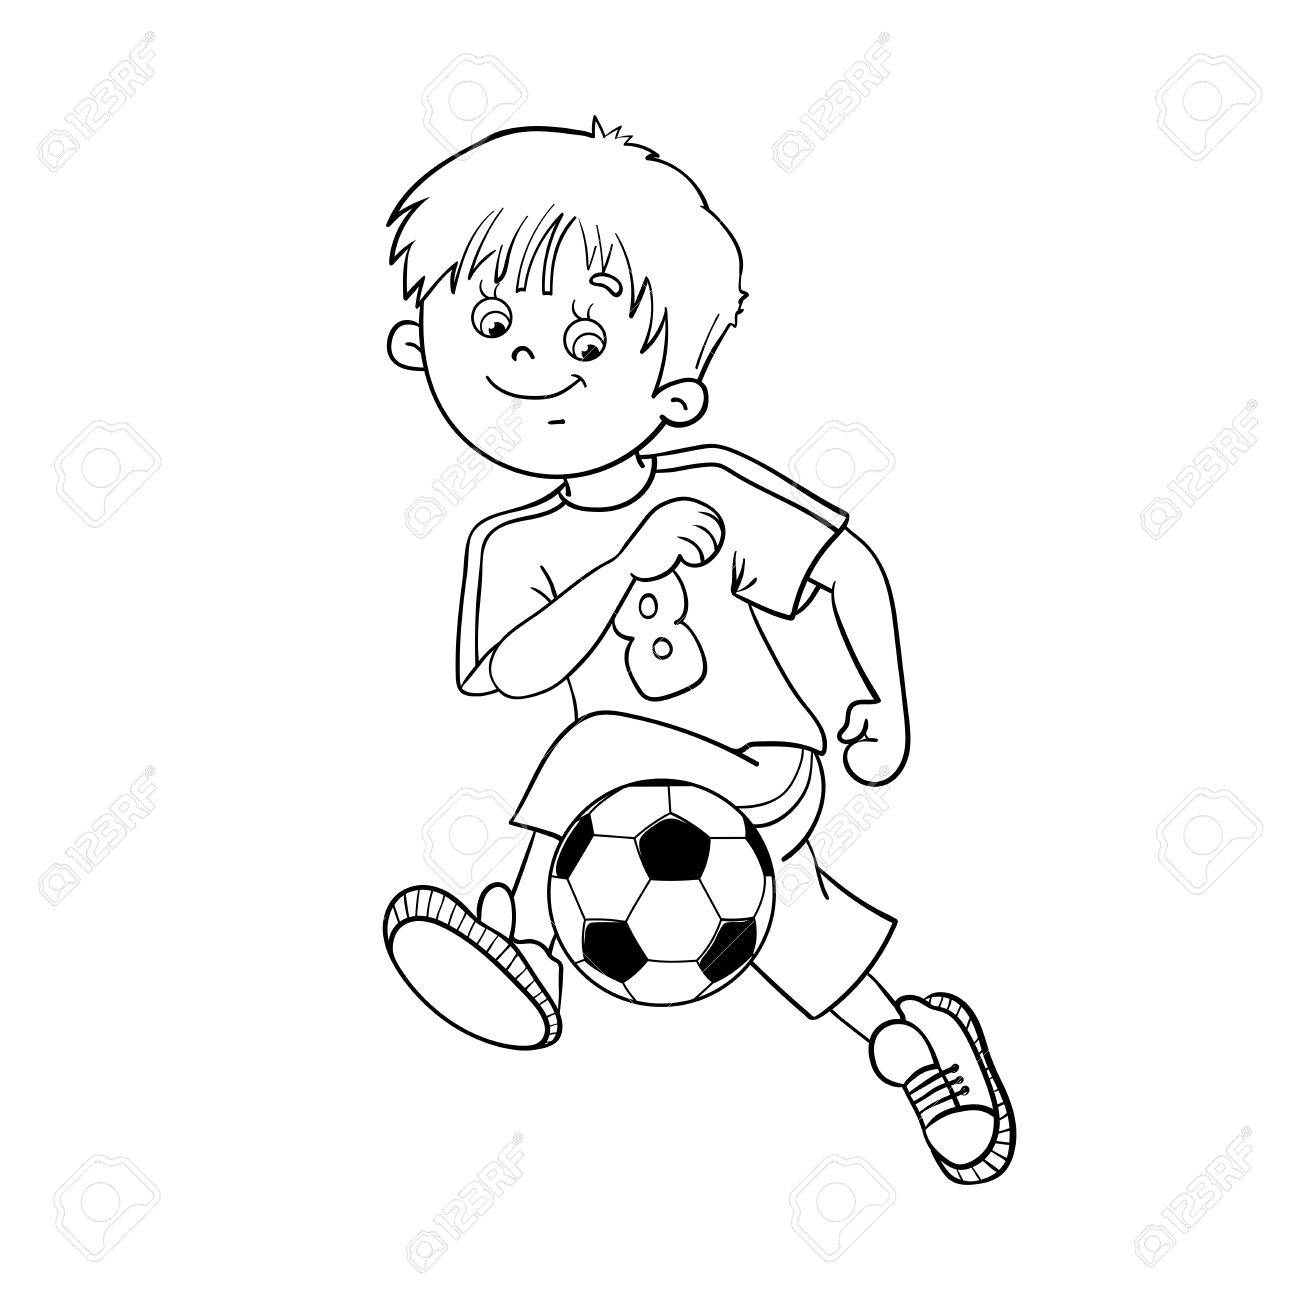 coloring page outline of a soccer boy royalty free cliparts